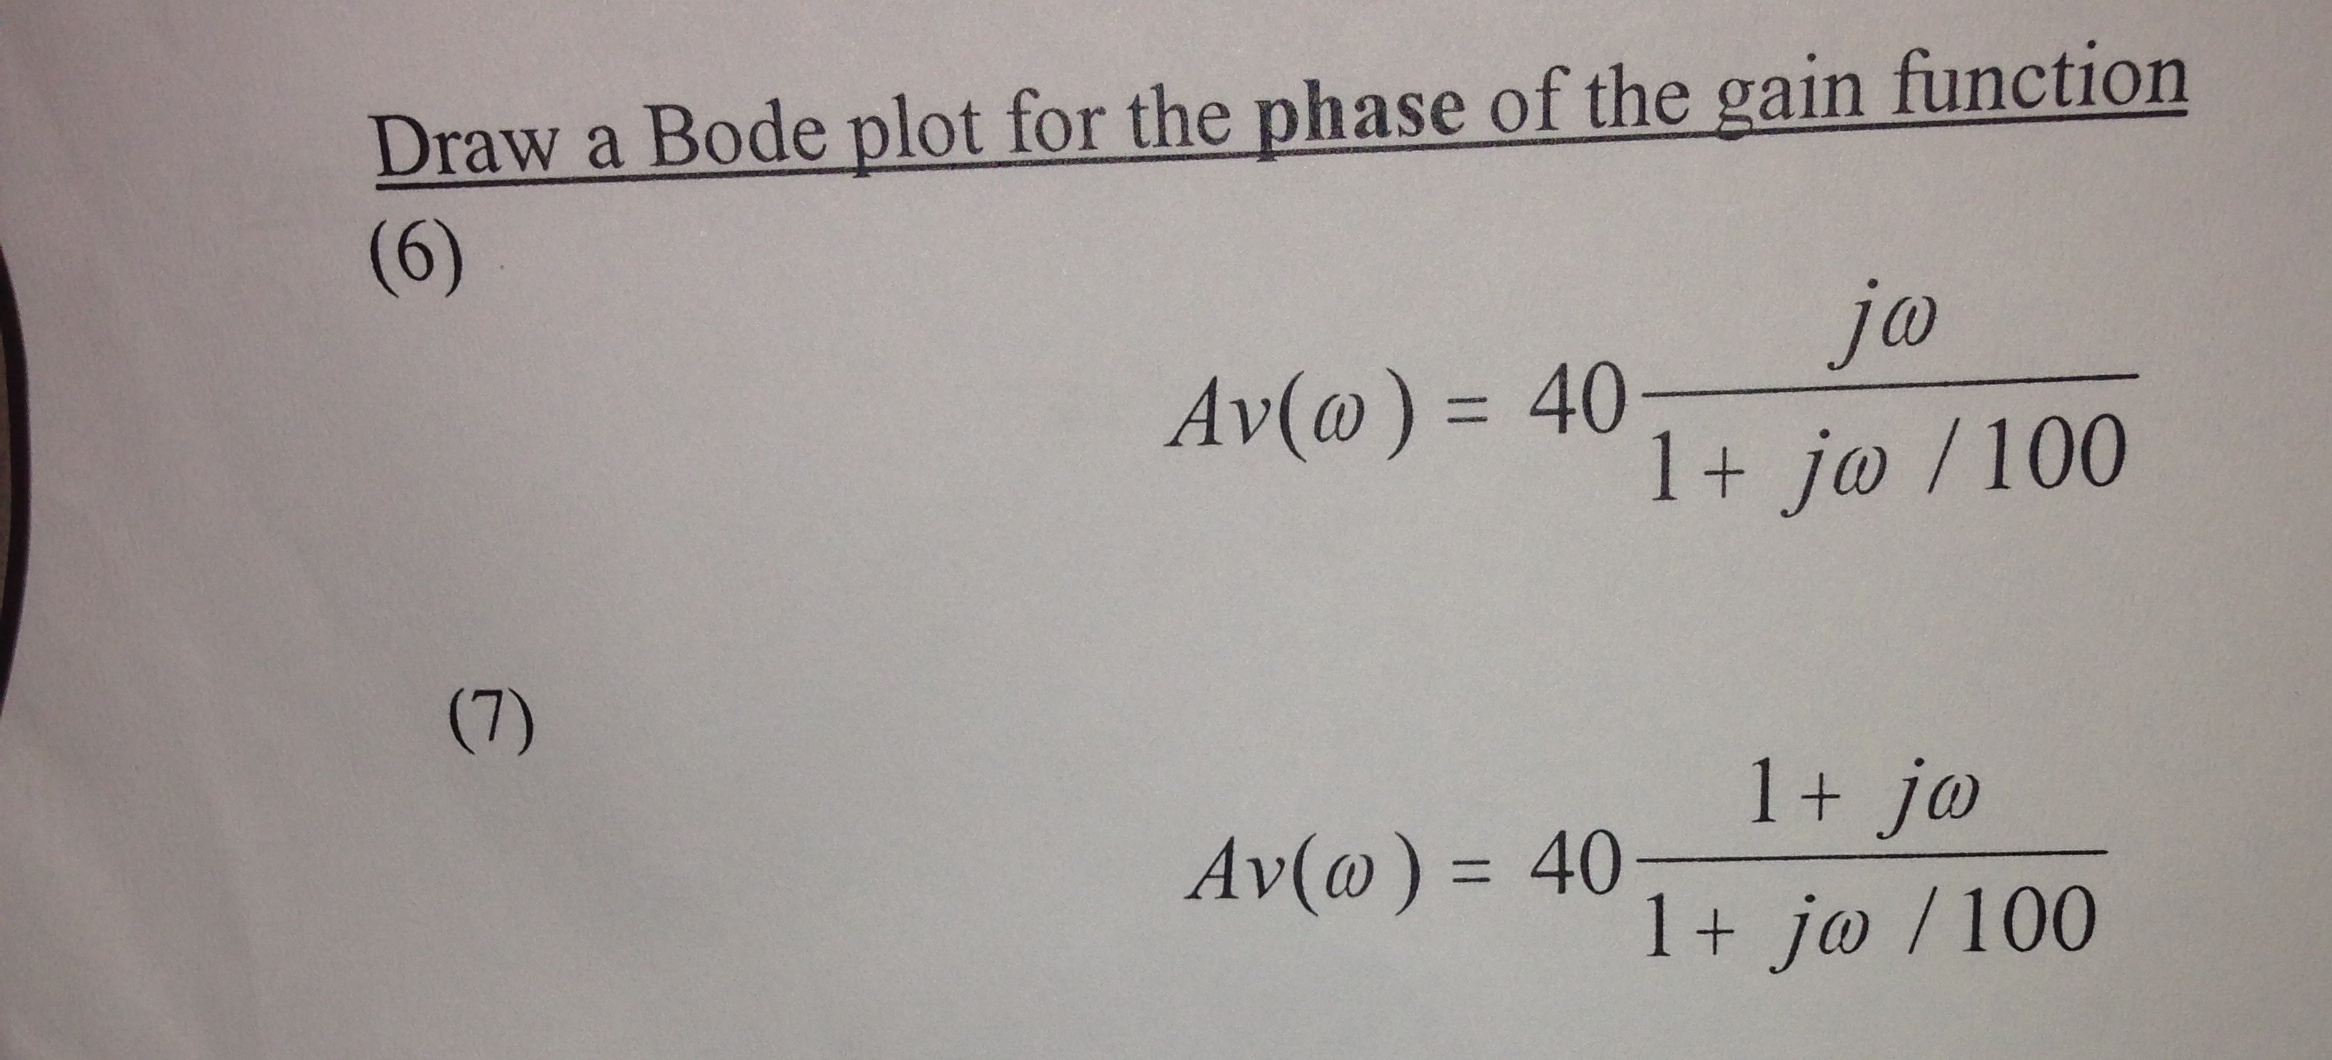 Draw the Bode plot for the magnitude of the gain f